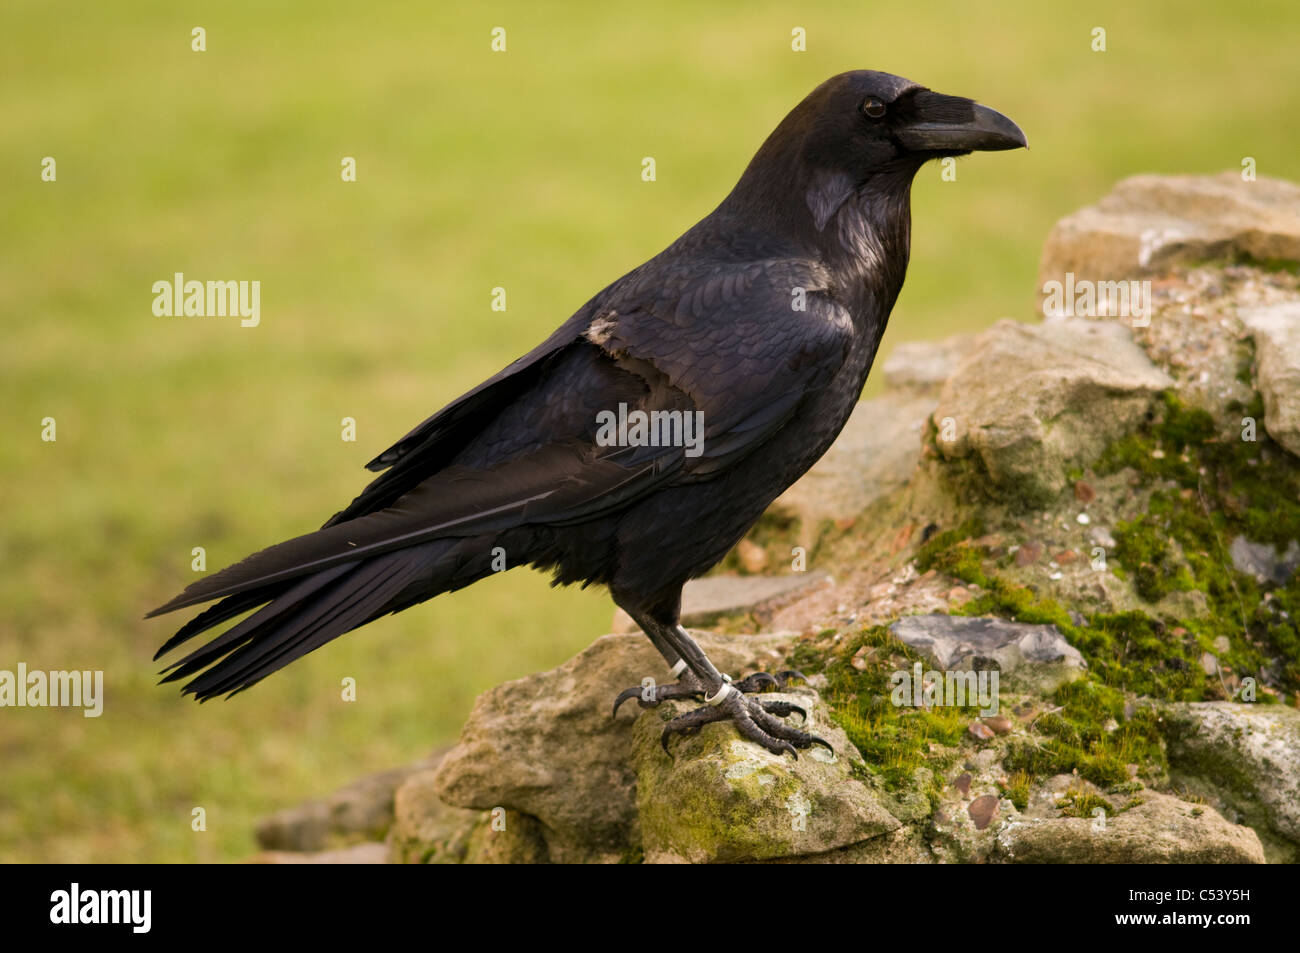 RAVEN Corvus corax Bird with clipped wing feathers to prevent flight Tower of London, UK CAPTIVE - Stock Image